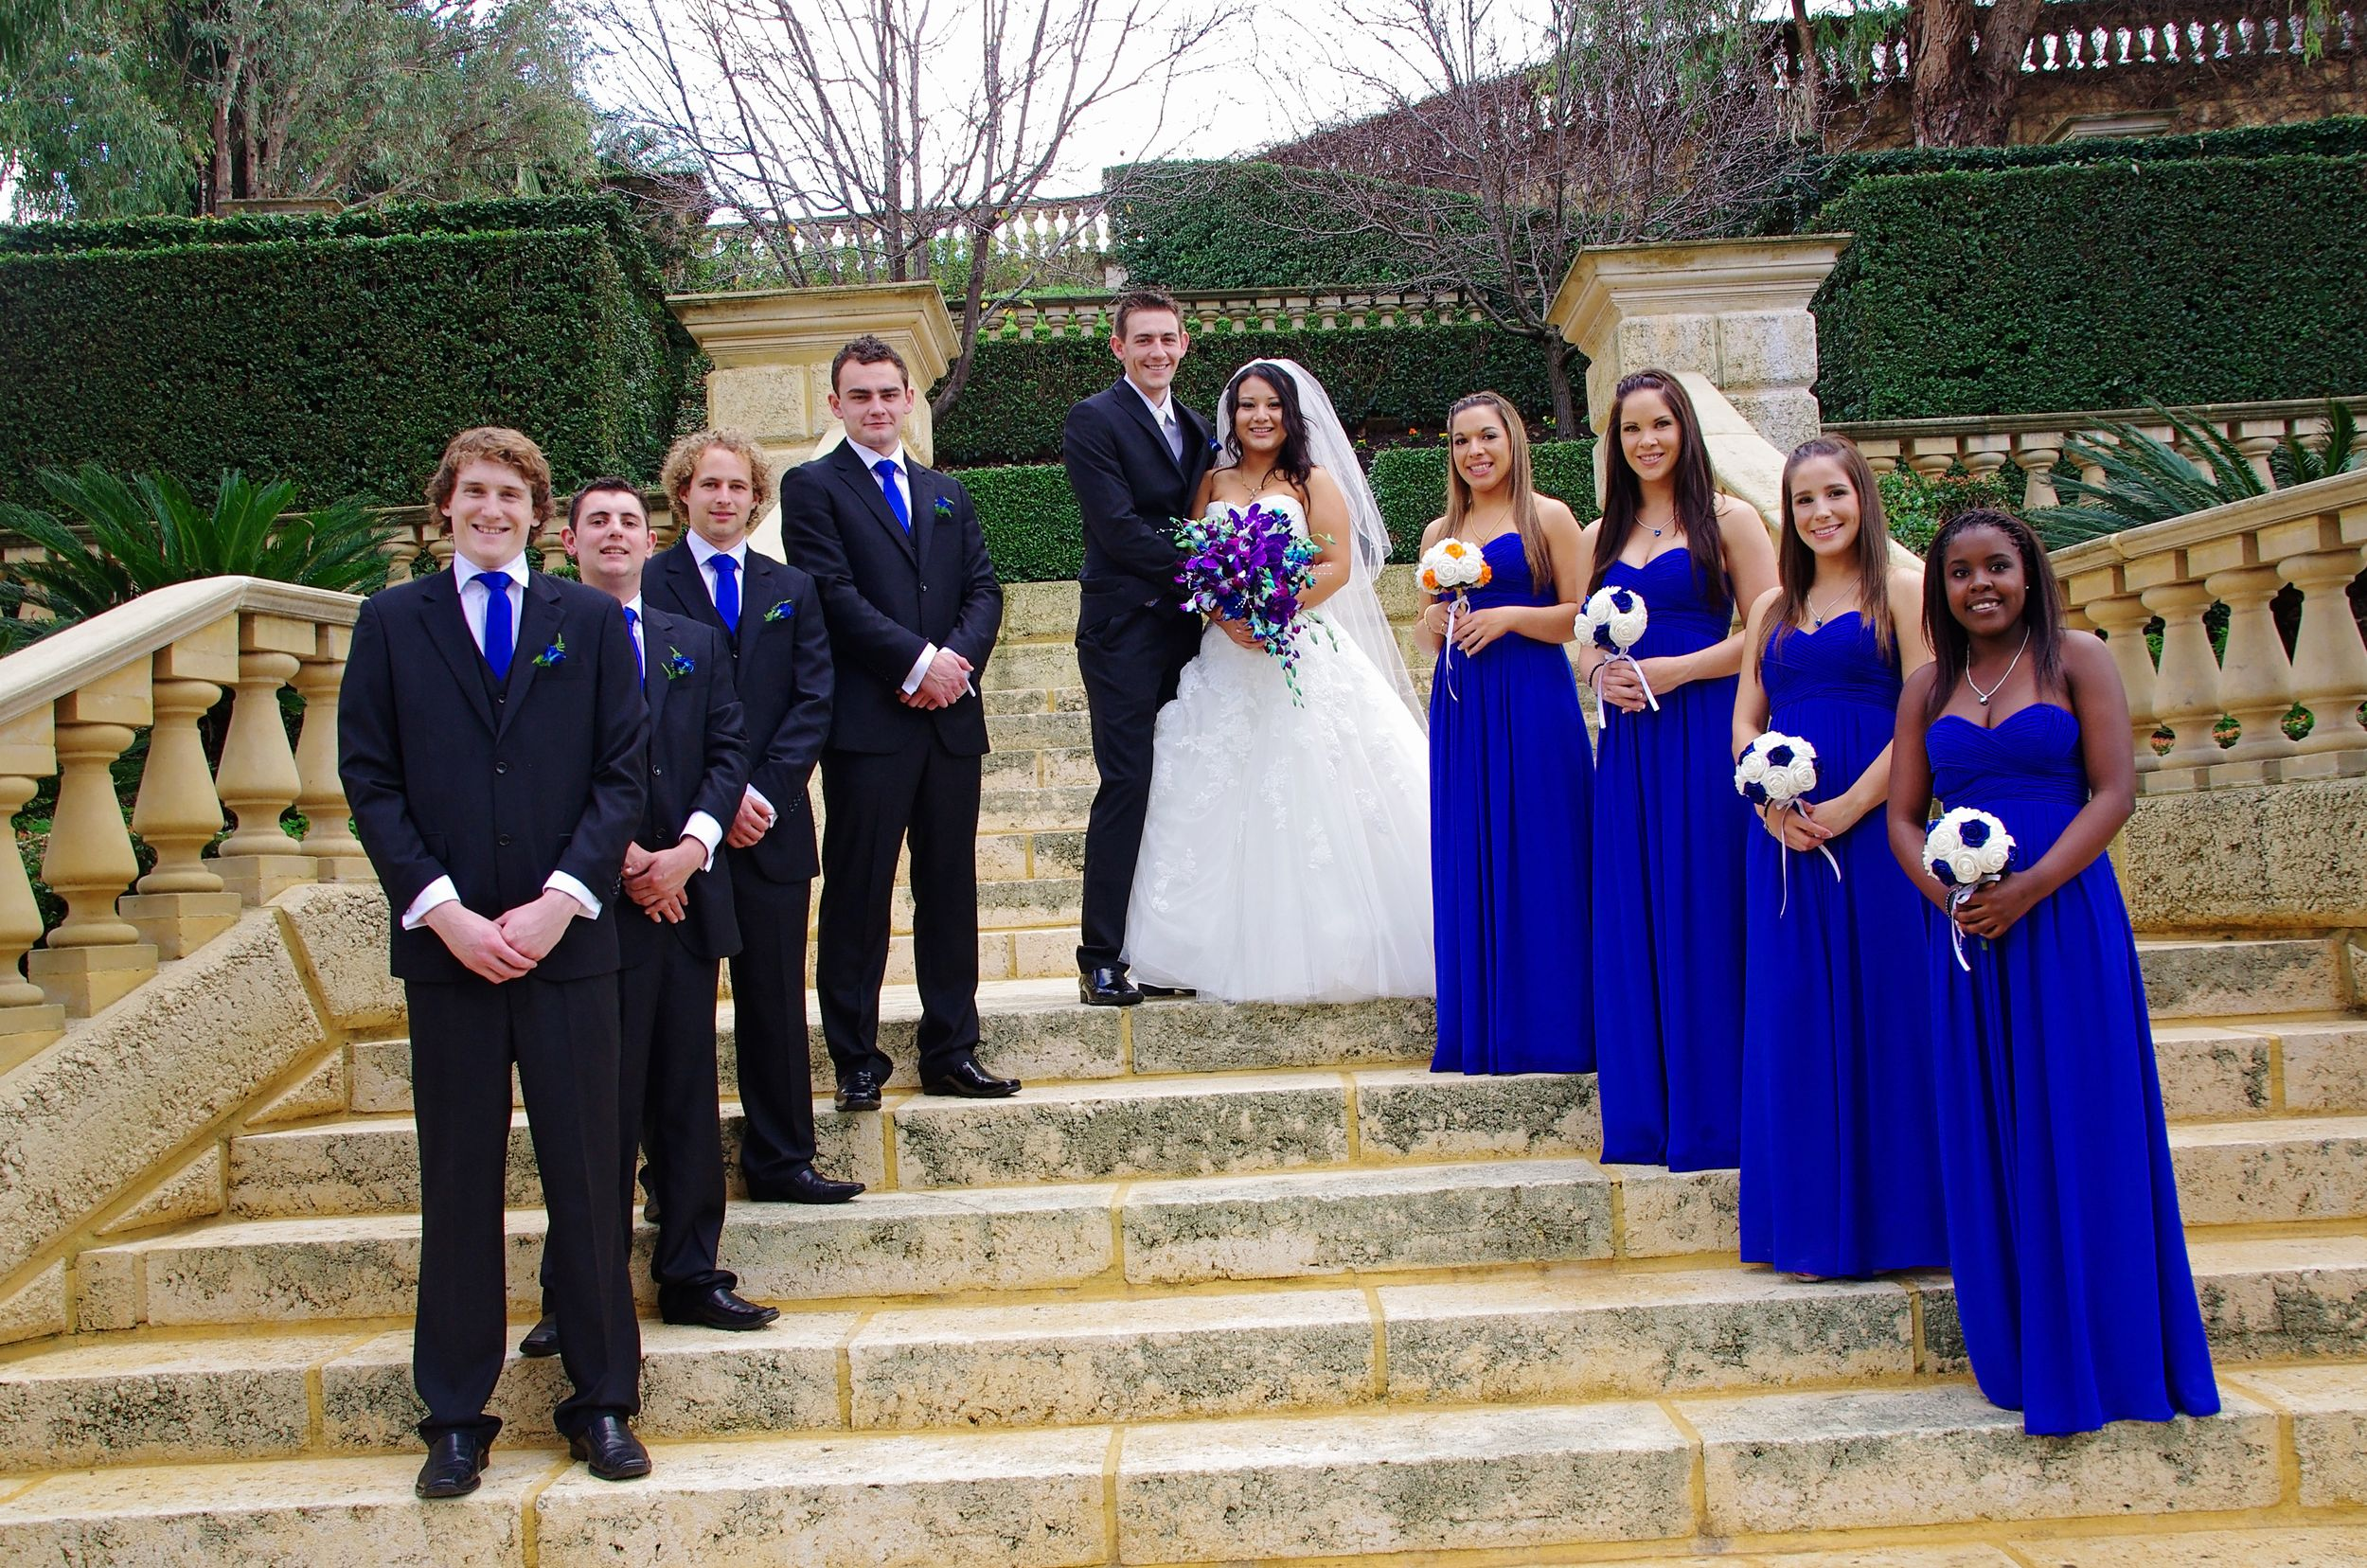 bridal party posing on steps and looking at camera with bride and groom